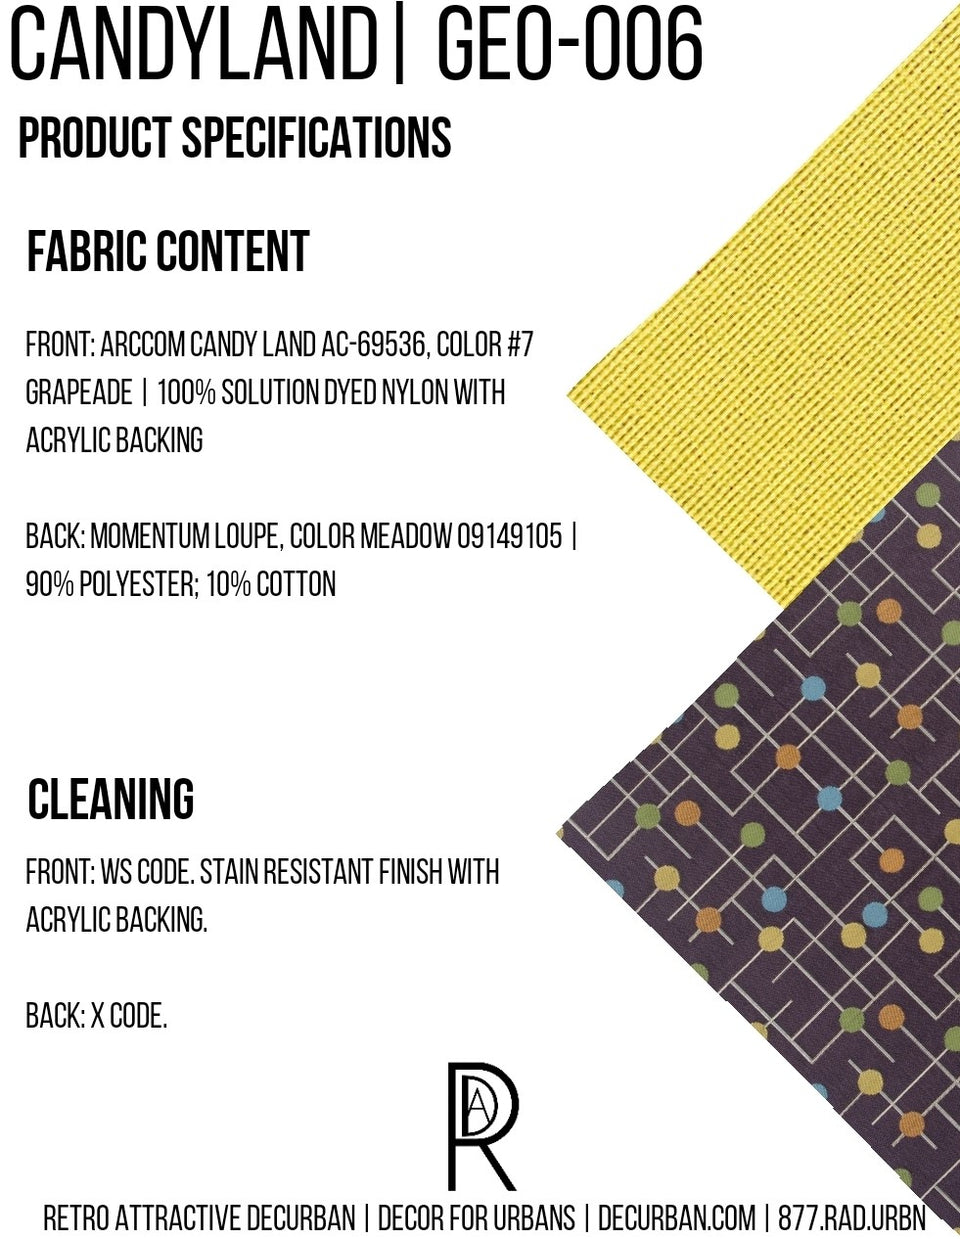 Decurban Candyland Fabric Specification Sheet